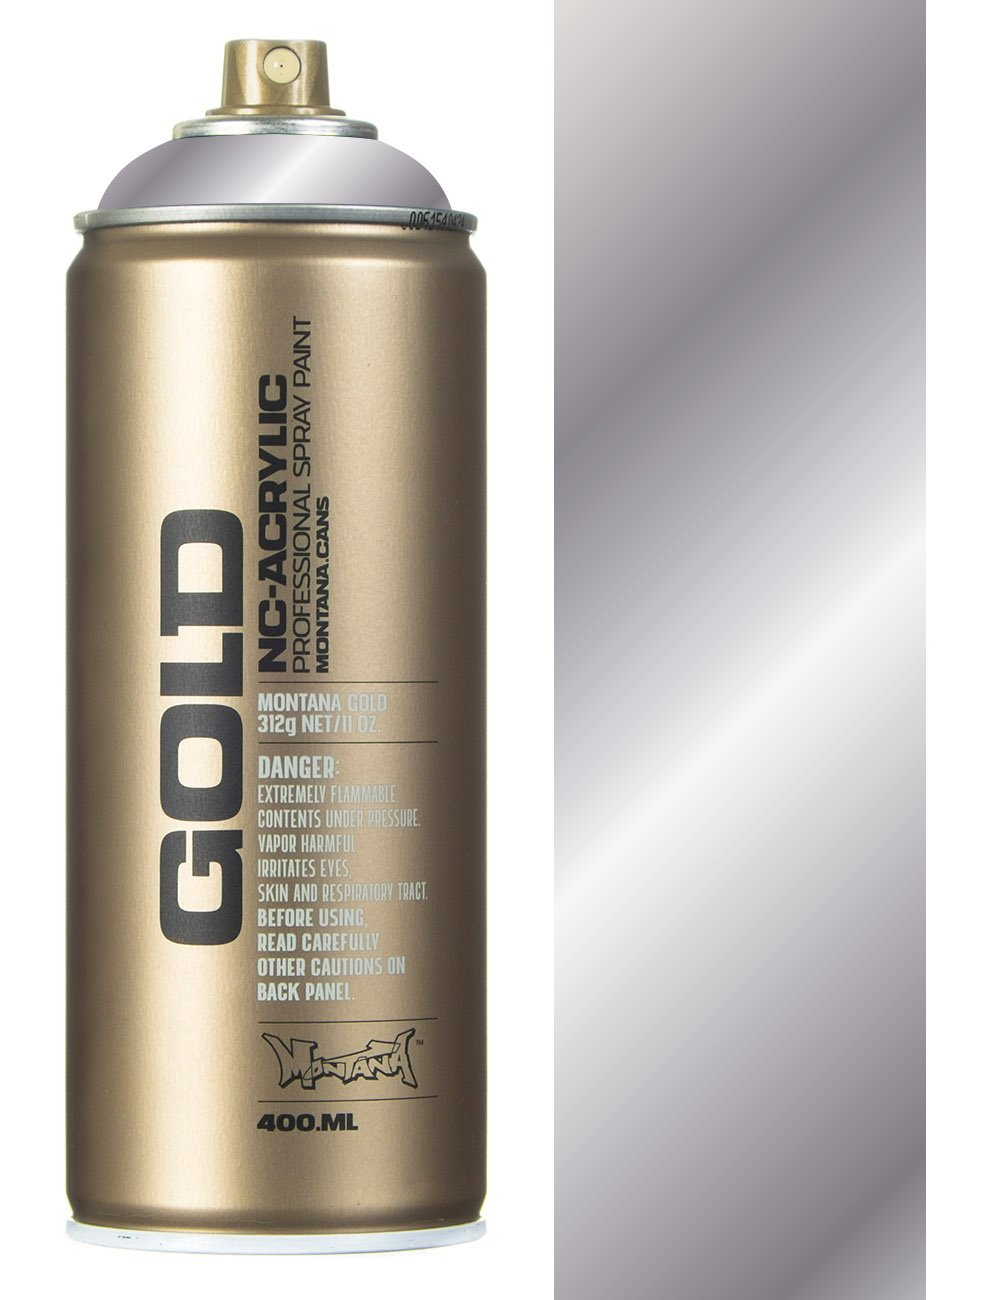 Montana Gold Silver Chrome Spray Paint 400ml Spray Paint Supplies From Iconsume Uk